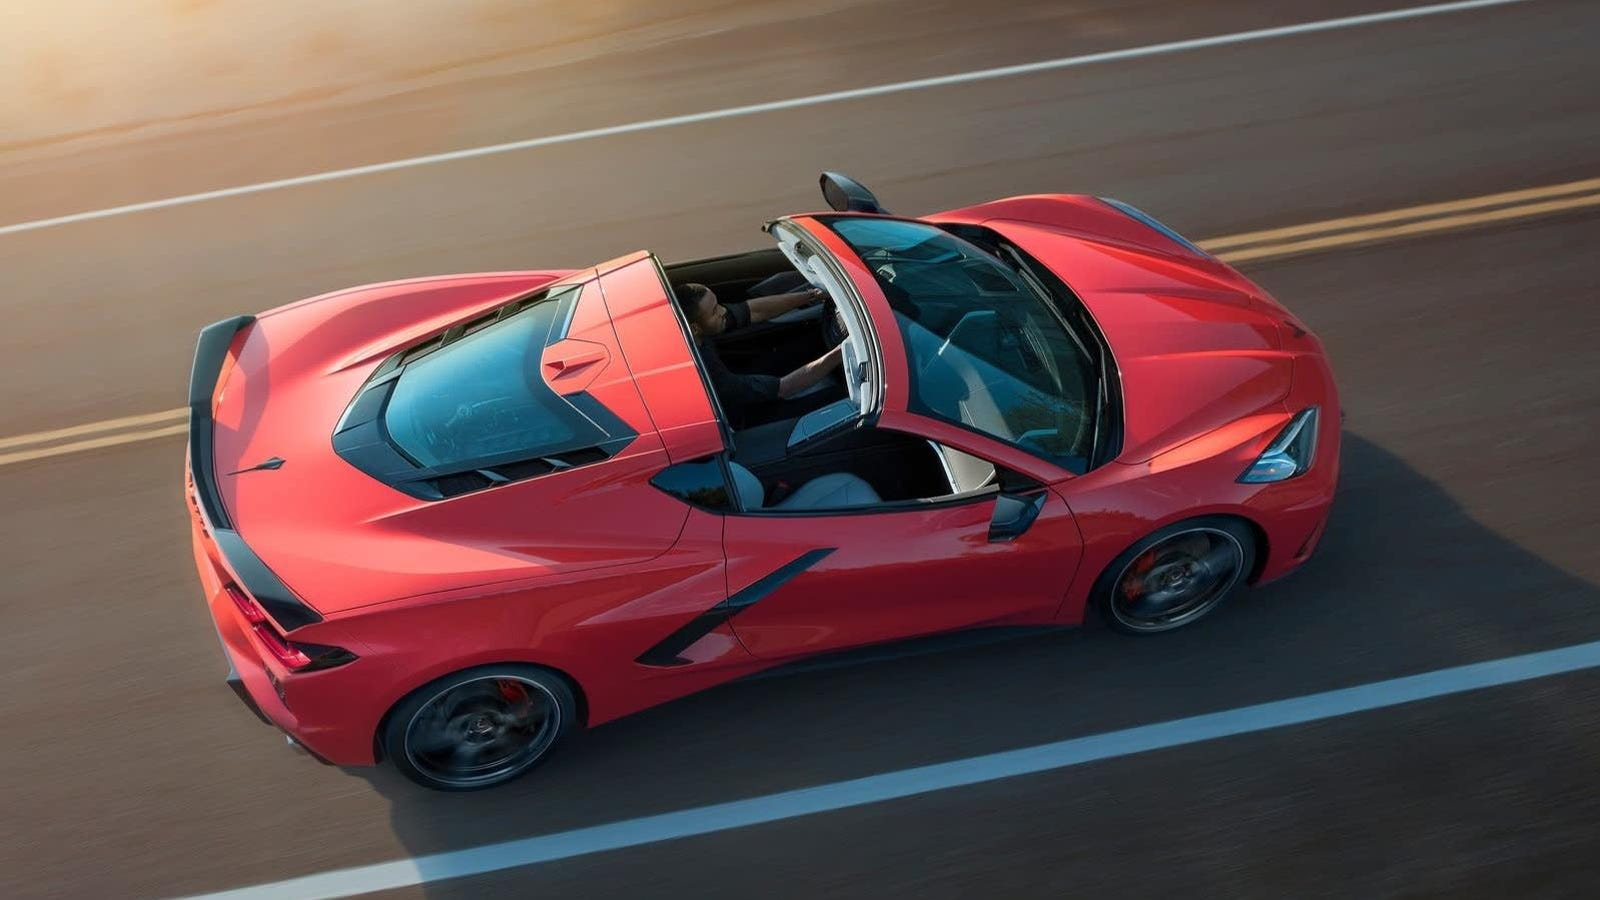 Get Over It: The C8 Corvette Is Not Getting a Manual Gearbox